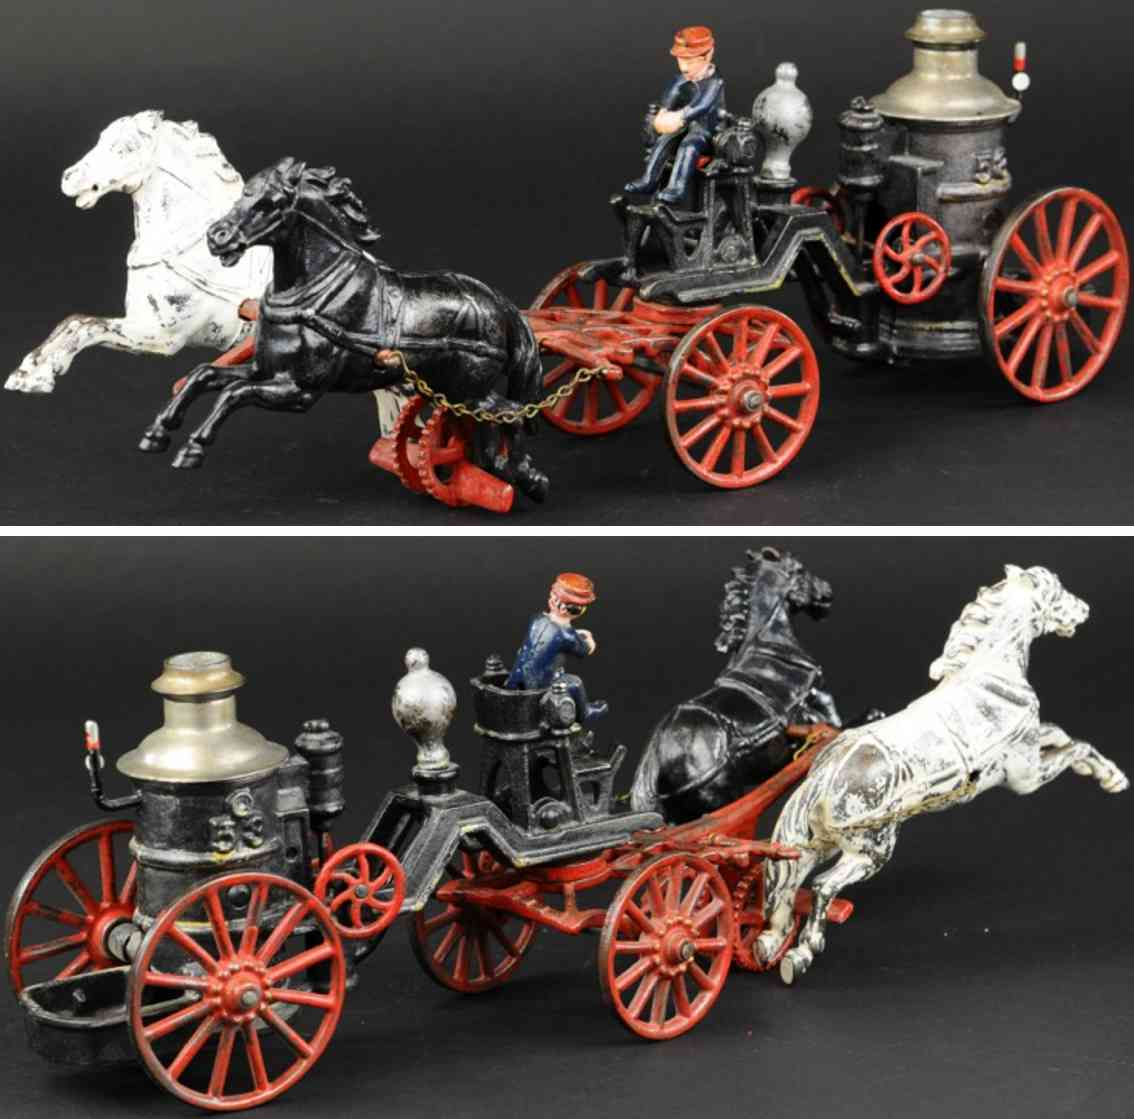 carpenter cast iron toy fire pumper